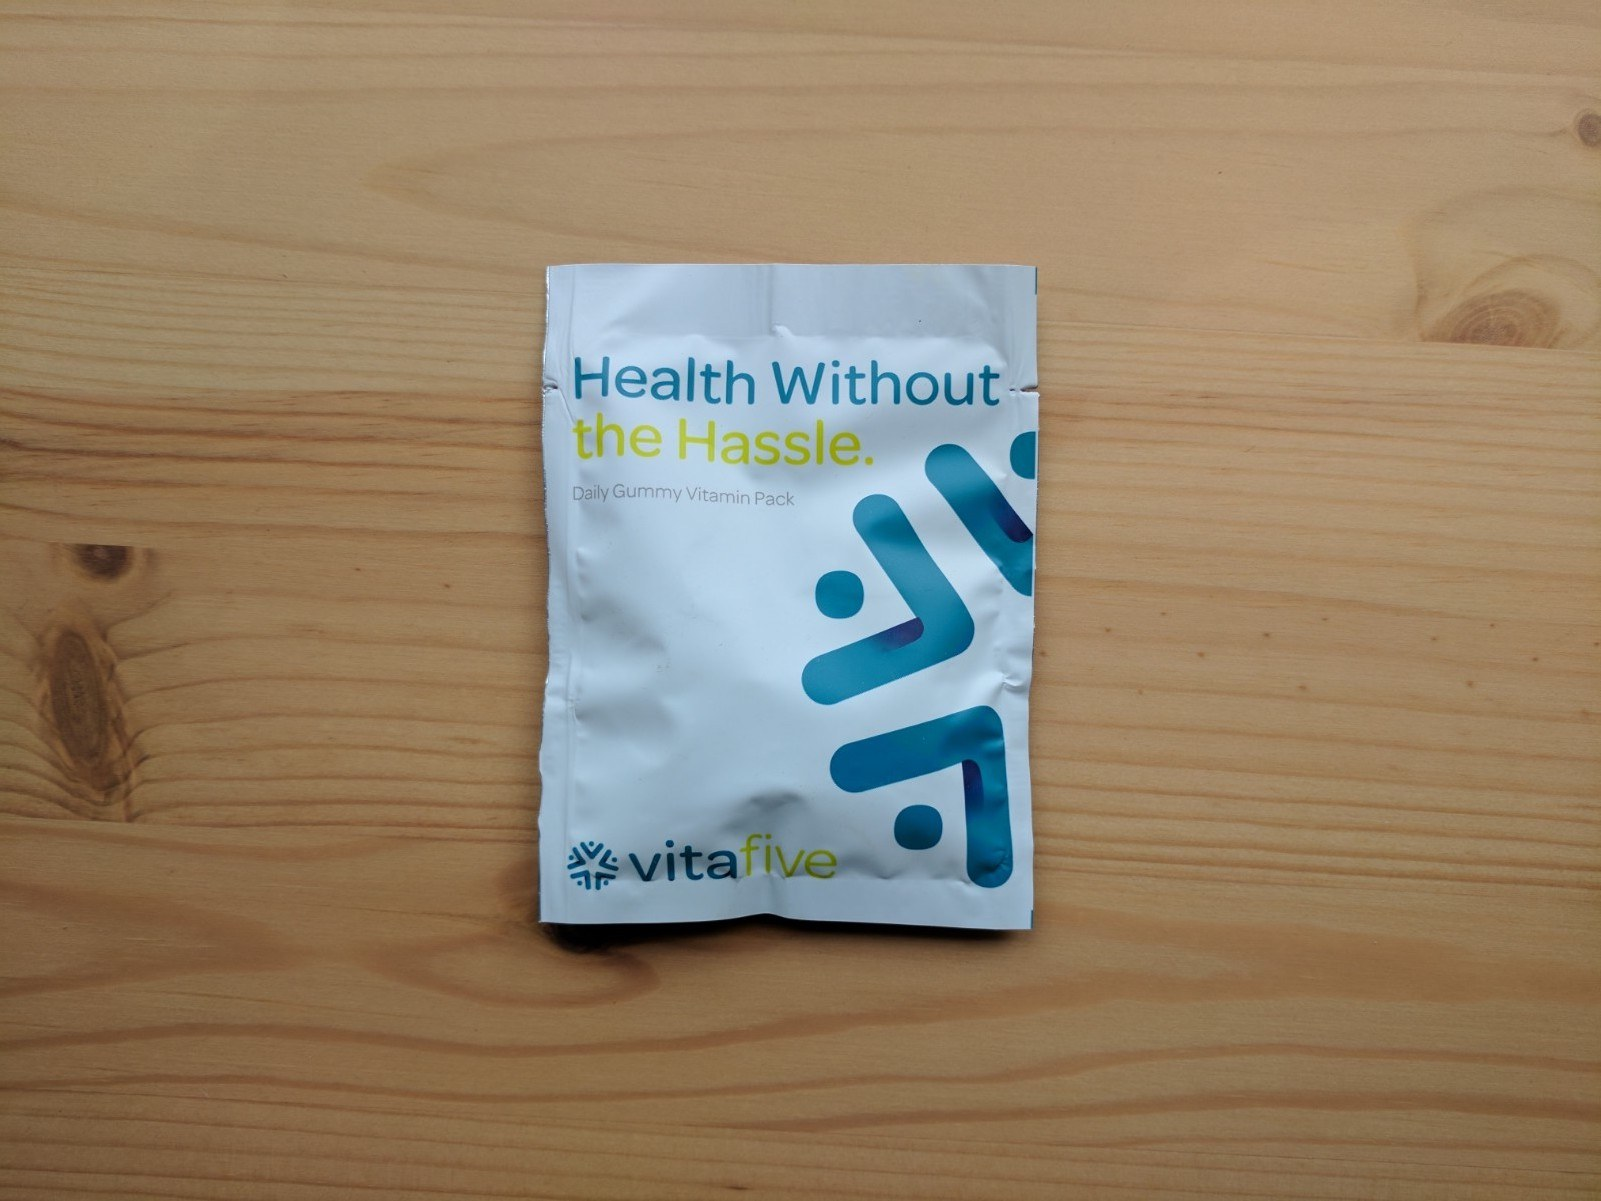 VitaFive Health Without the Hassle Daily Gummy Vitamin Pack